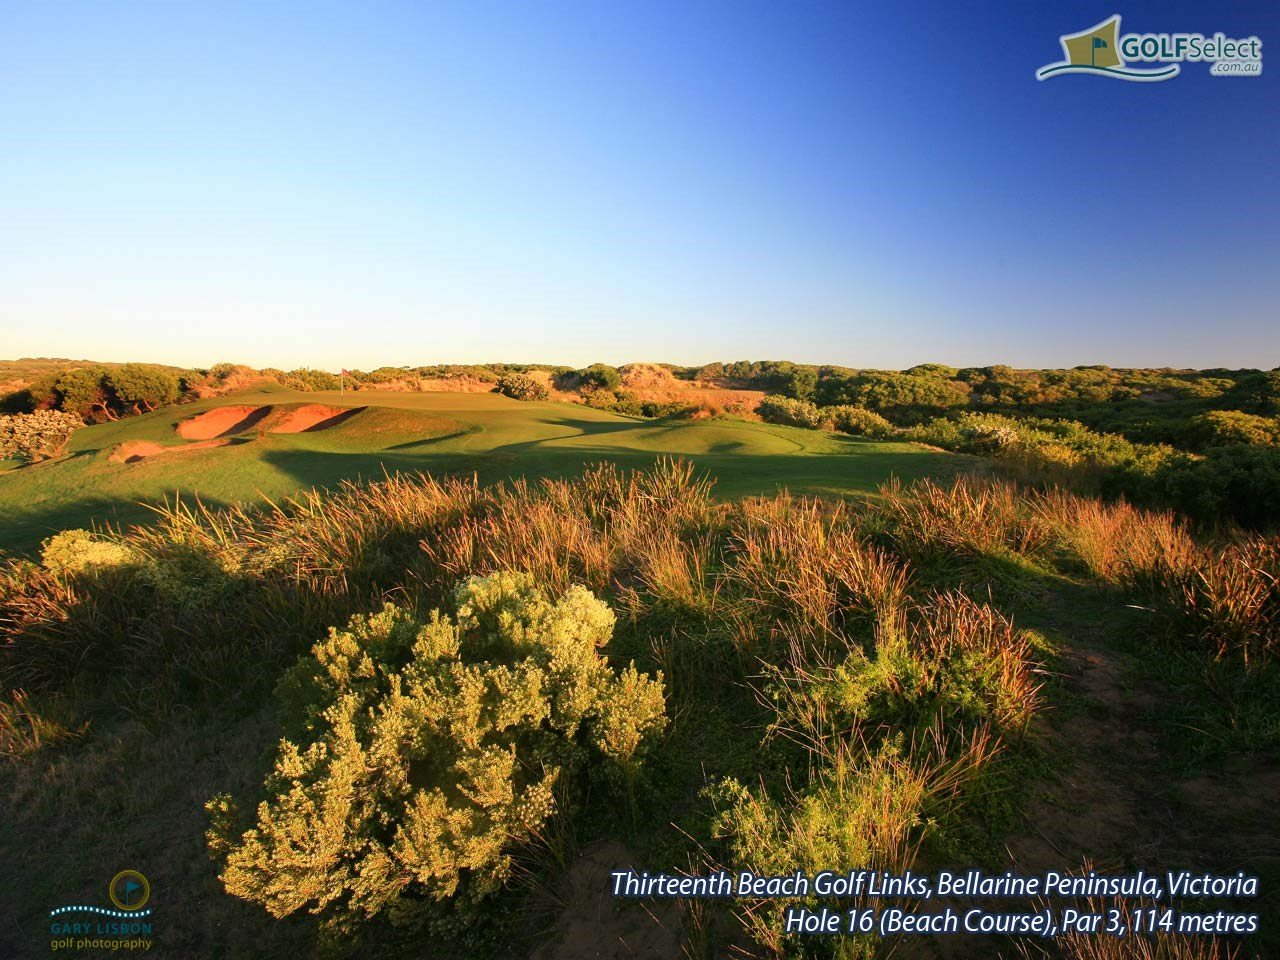 Thirteenth Beach Golf Links (Beach Course) Hole 16, Par 3, 114 metres